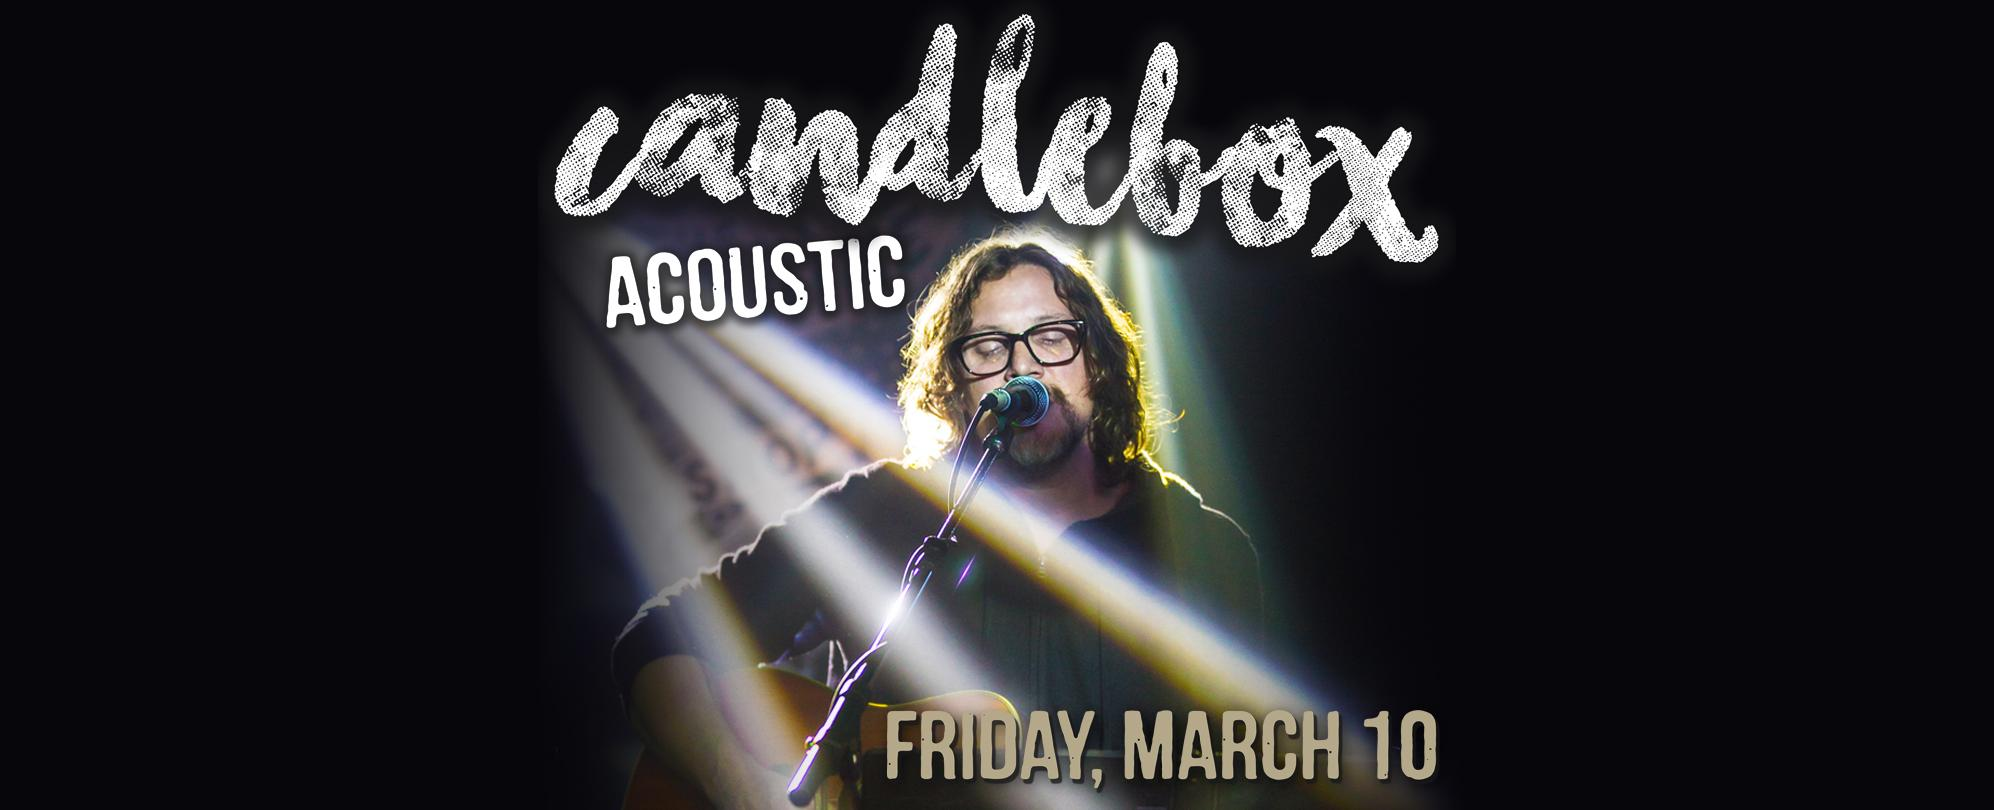 Candlebox Acoustic